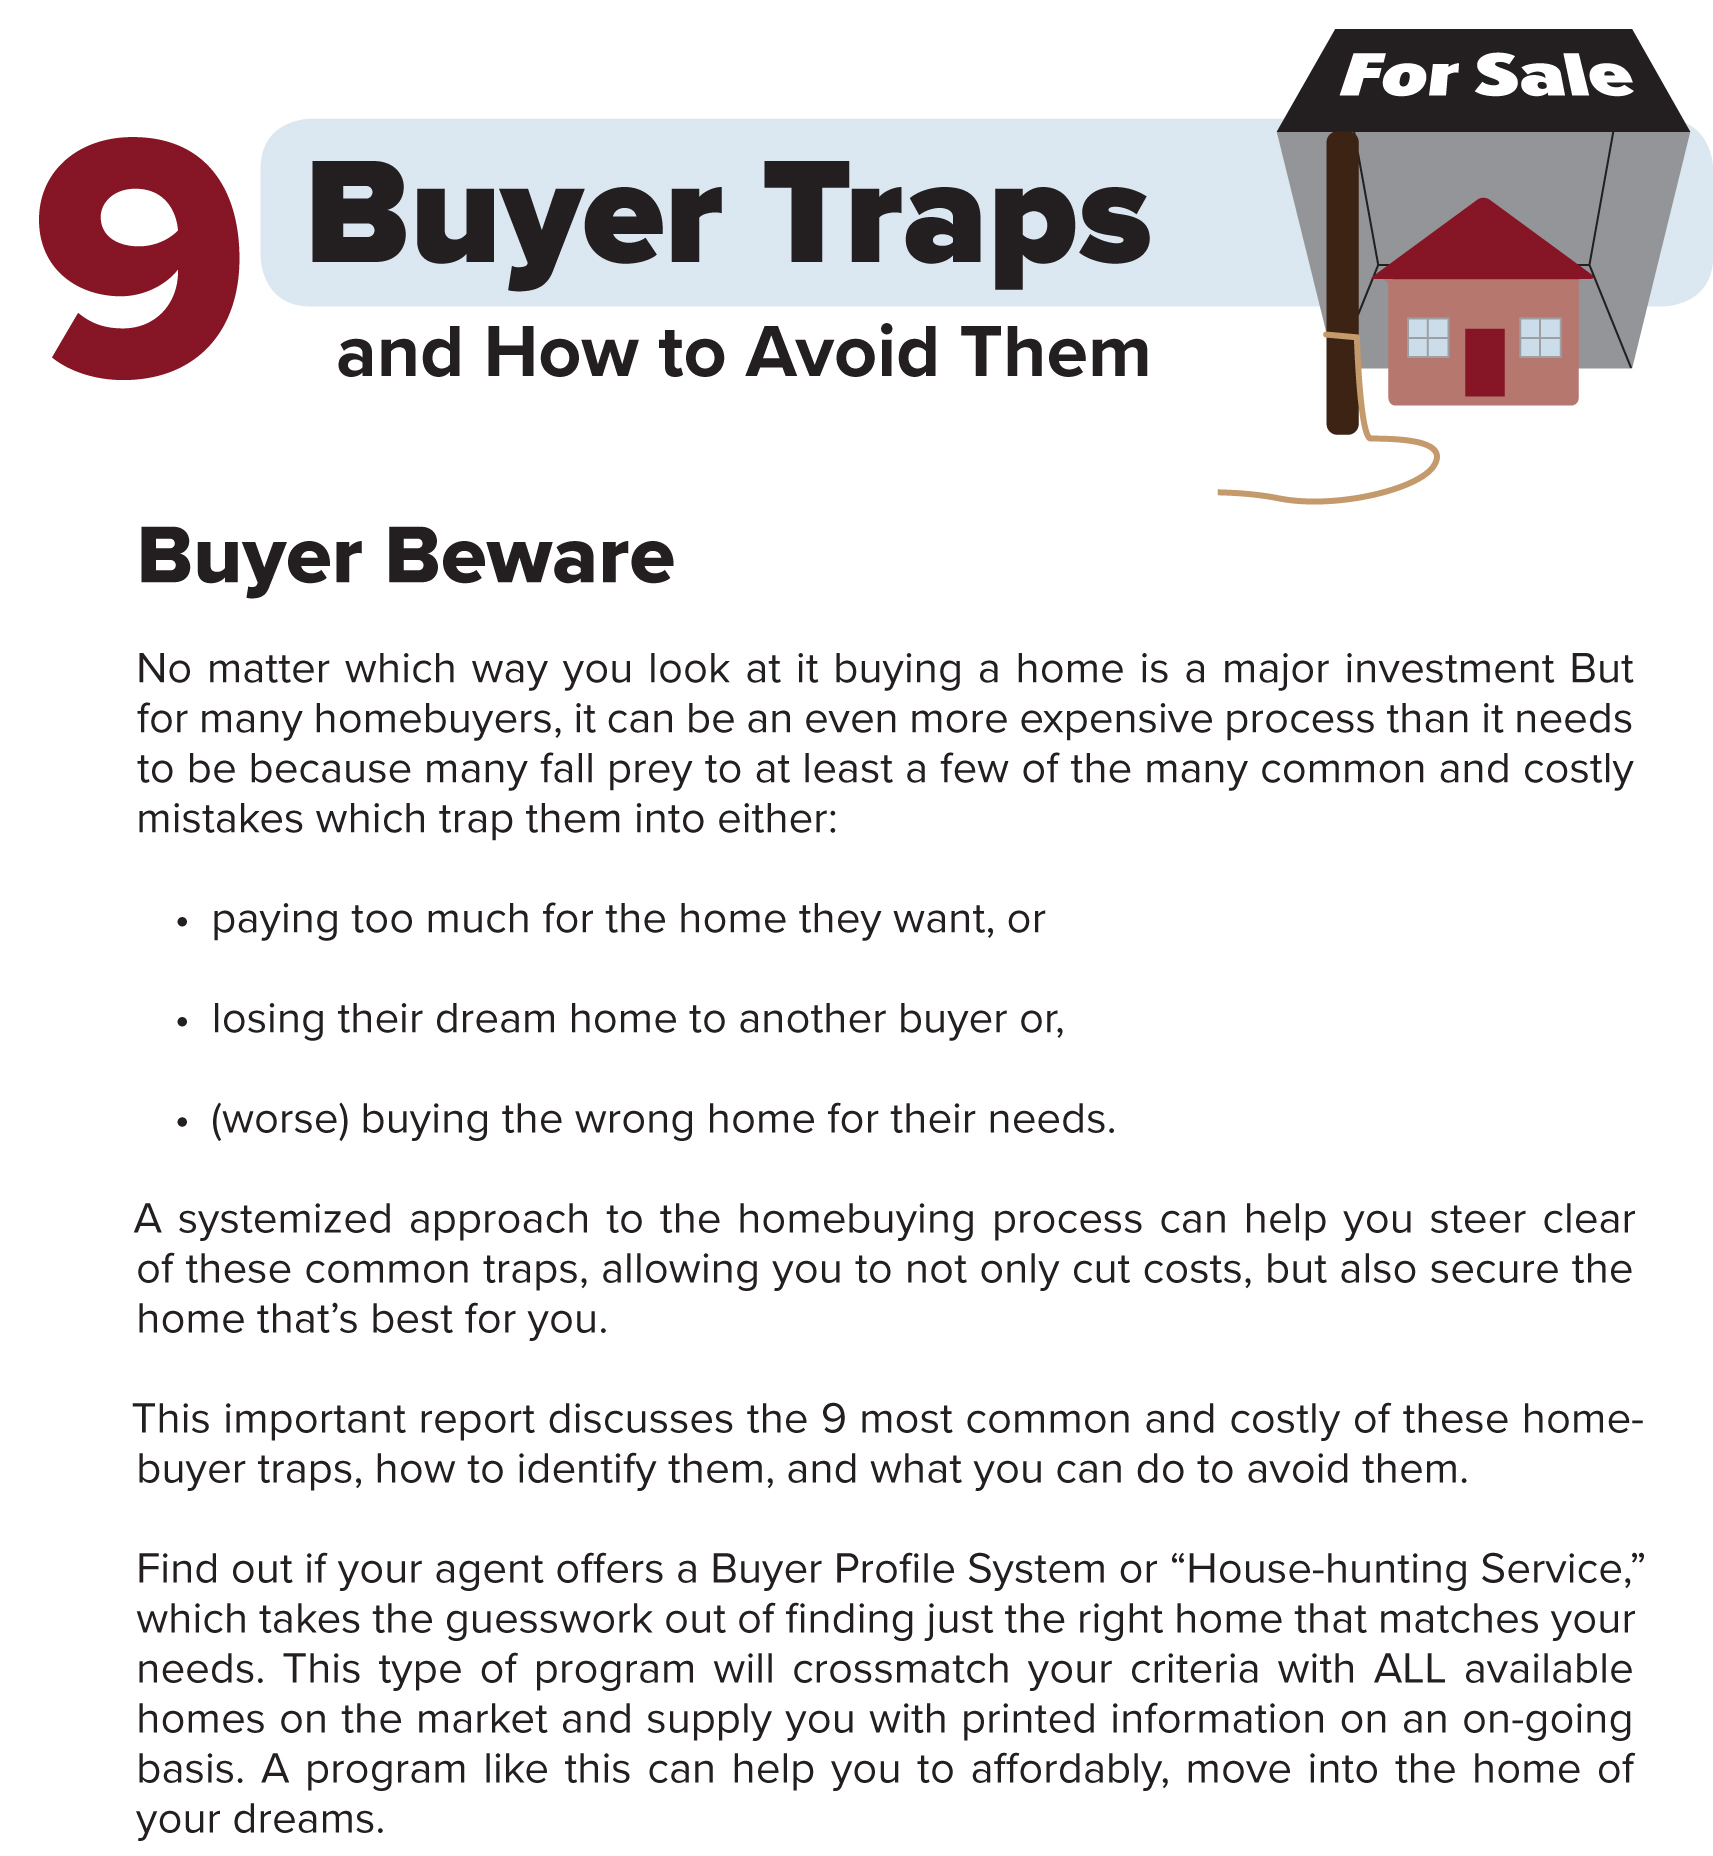 caution - buyer traps-1.jpg